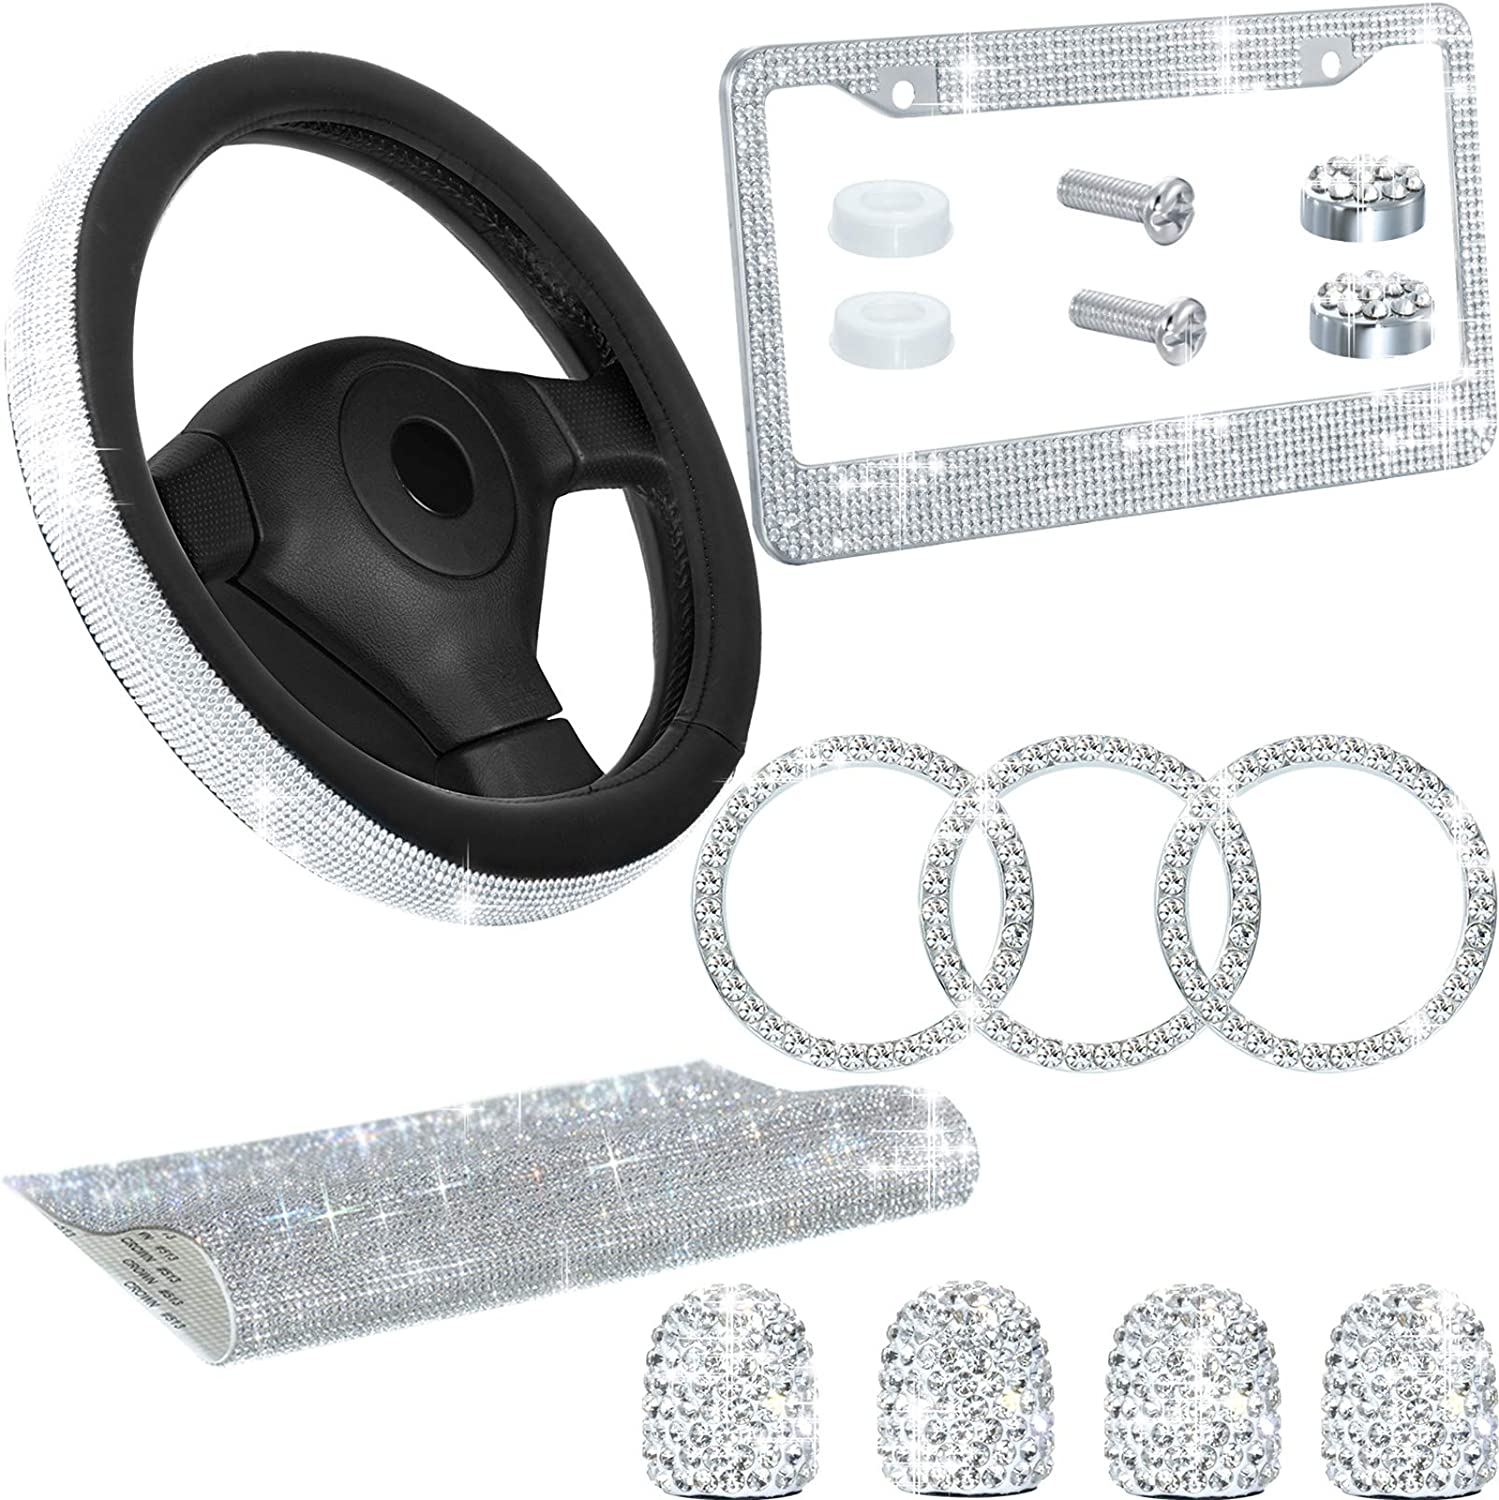 10 Packs 4 Blings Car Coasters Car Accessories for women Set /& 1 Car Phone Holder Mount 2 Pieces Bling Sunglasses Holders and 2 Bling Stickers for Car Interior Decoration for Girl /& Mother/'s Day